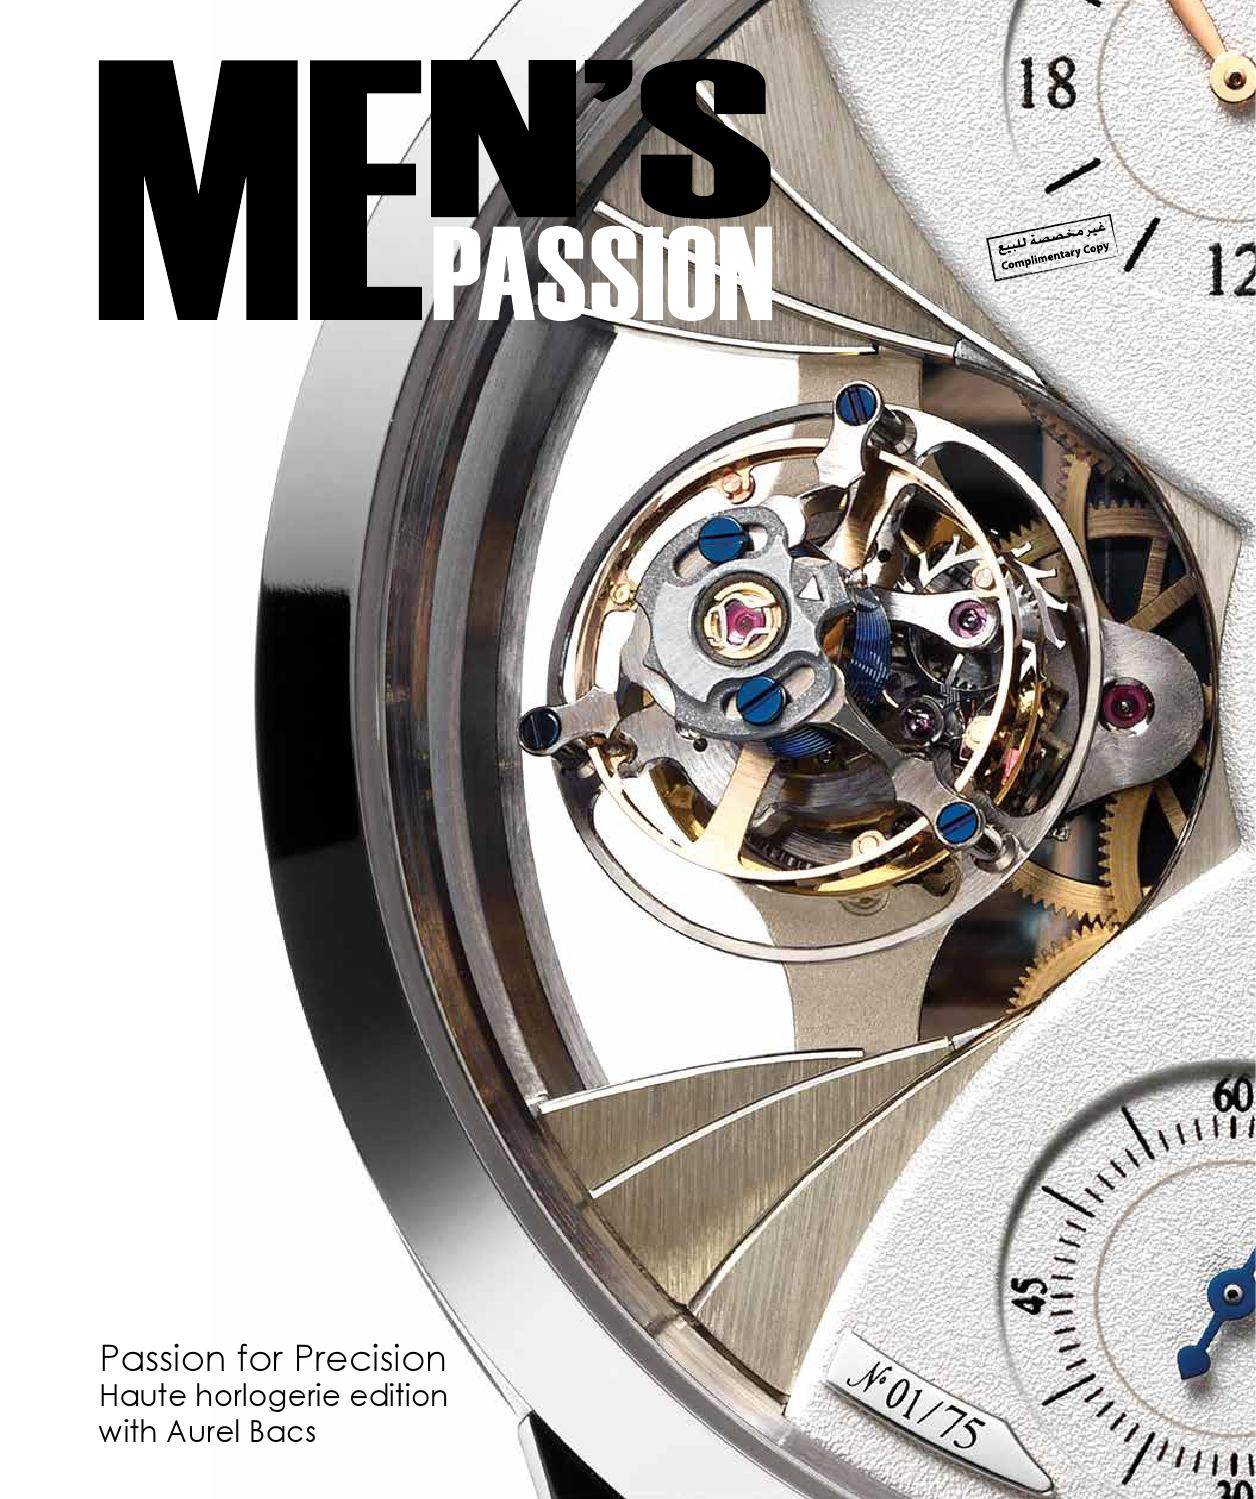 4a45adaf1 Men's Passion #68 - May 2015 by Men's Passion Magazine - issuu